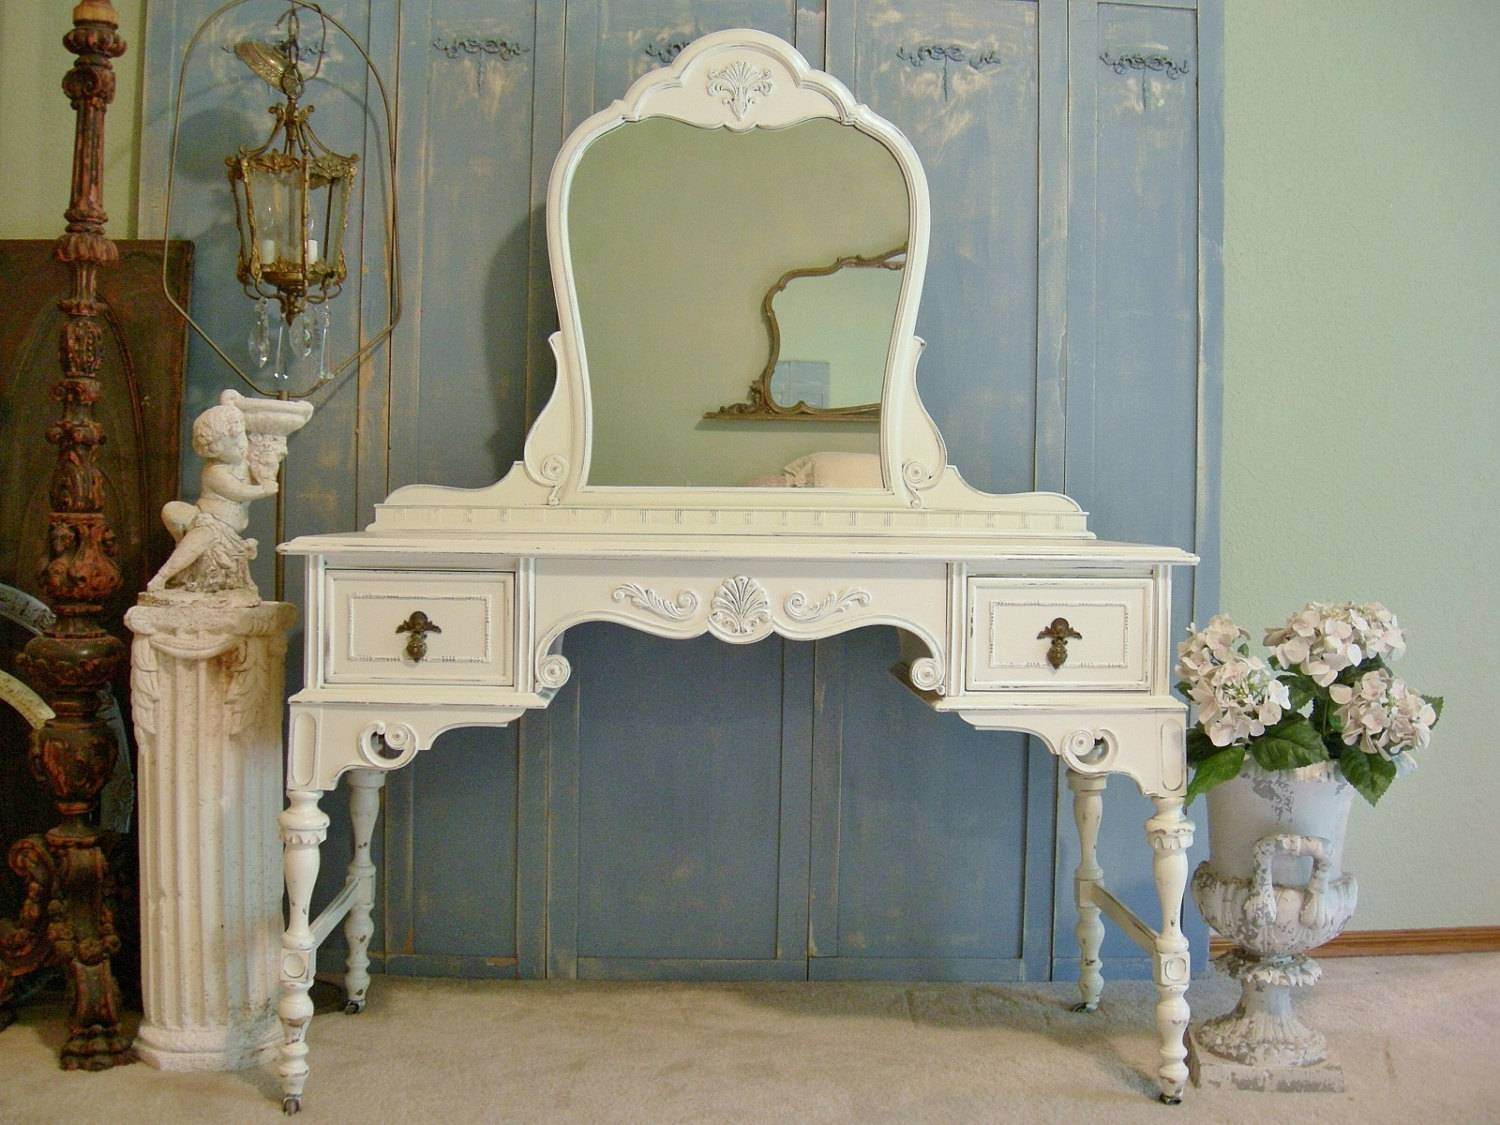 25 Cozy Shabby Chic Furniture Ideas For Your Home | Top Home Designs regarding Vintage Shabby Chic Wardrobes (Image 1 of 15)